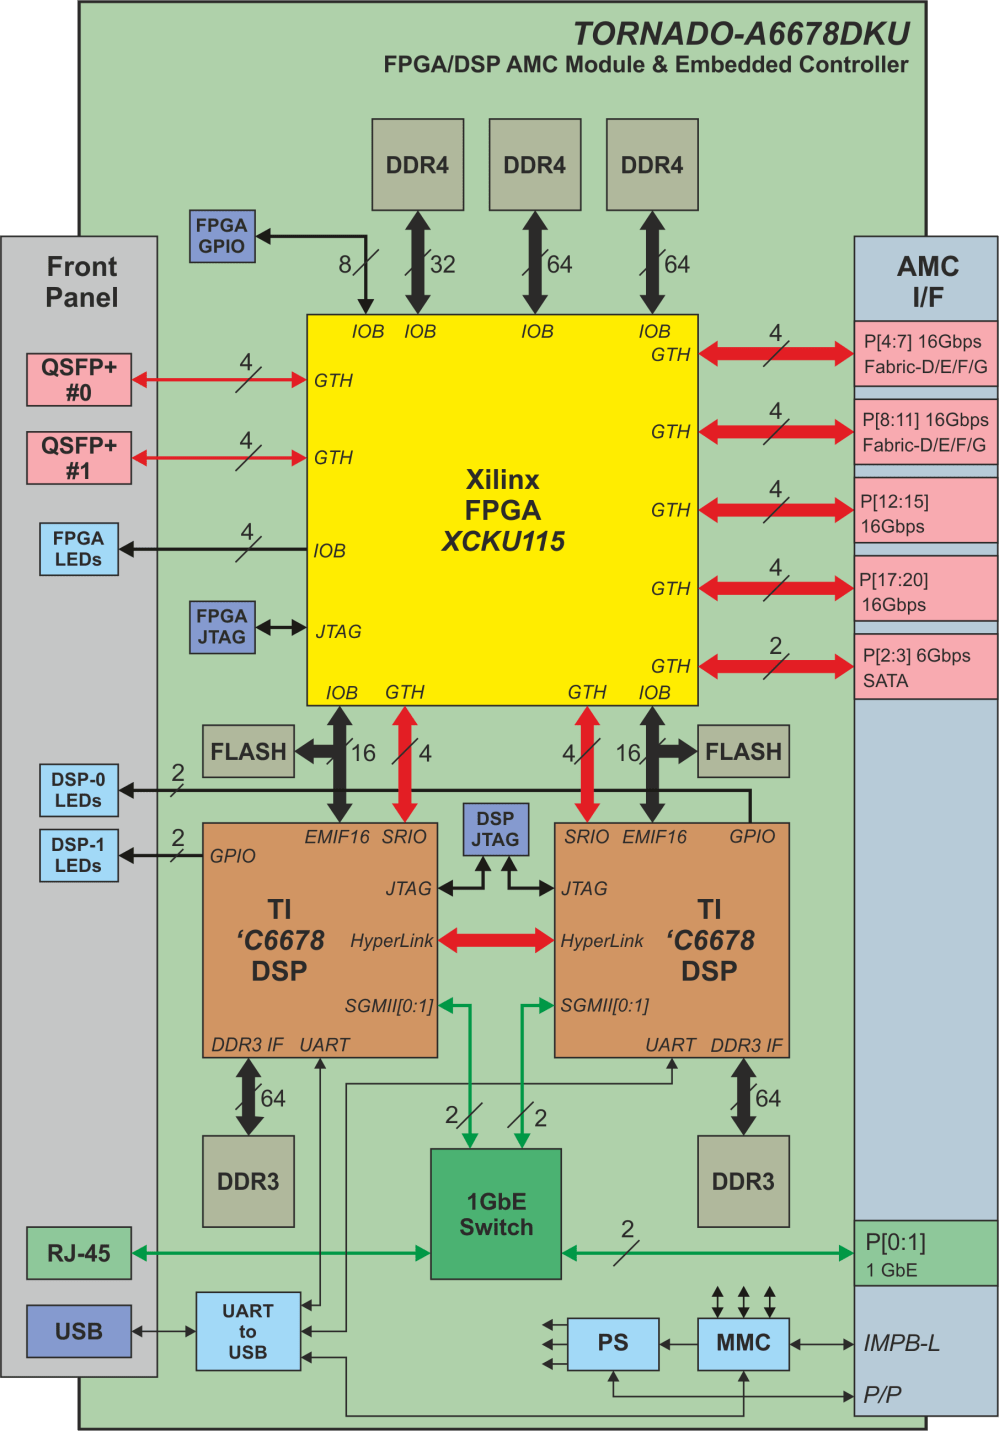 medium resolution of block diagram of tornado a6678dkuxxx amc module with two tms320c6678 dsps and kintex ultrascale